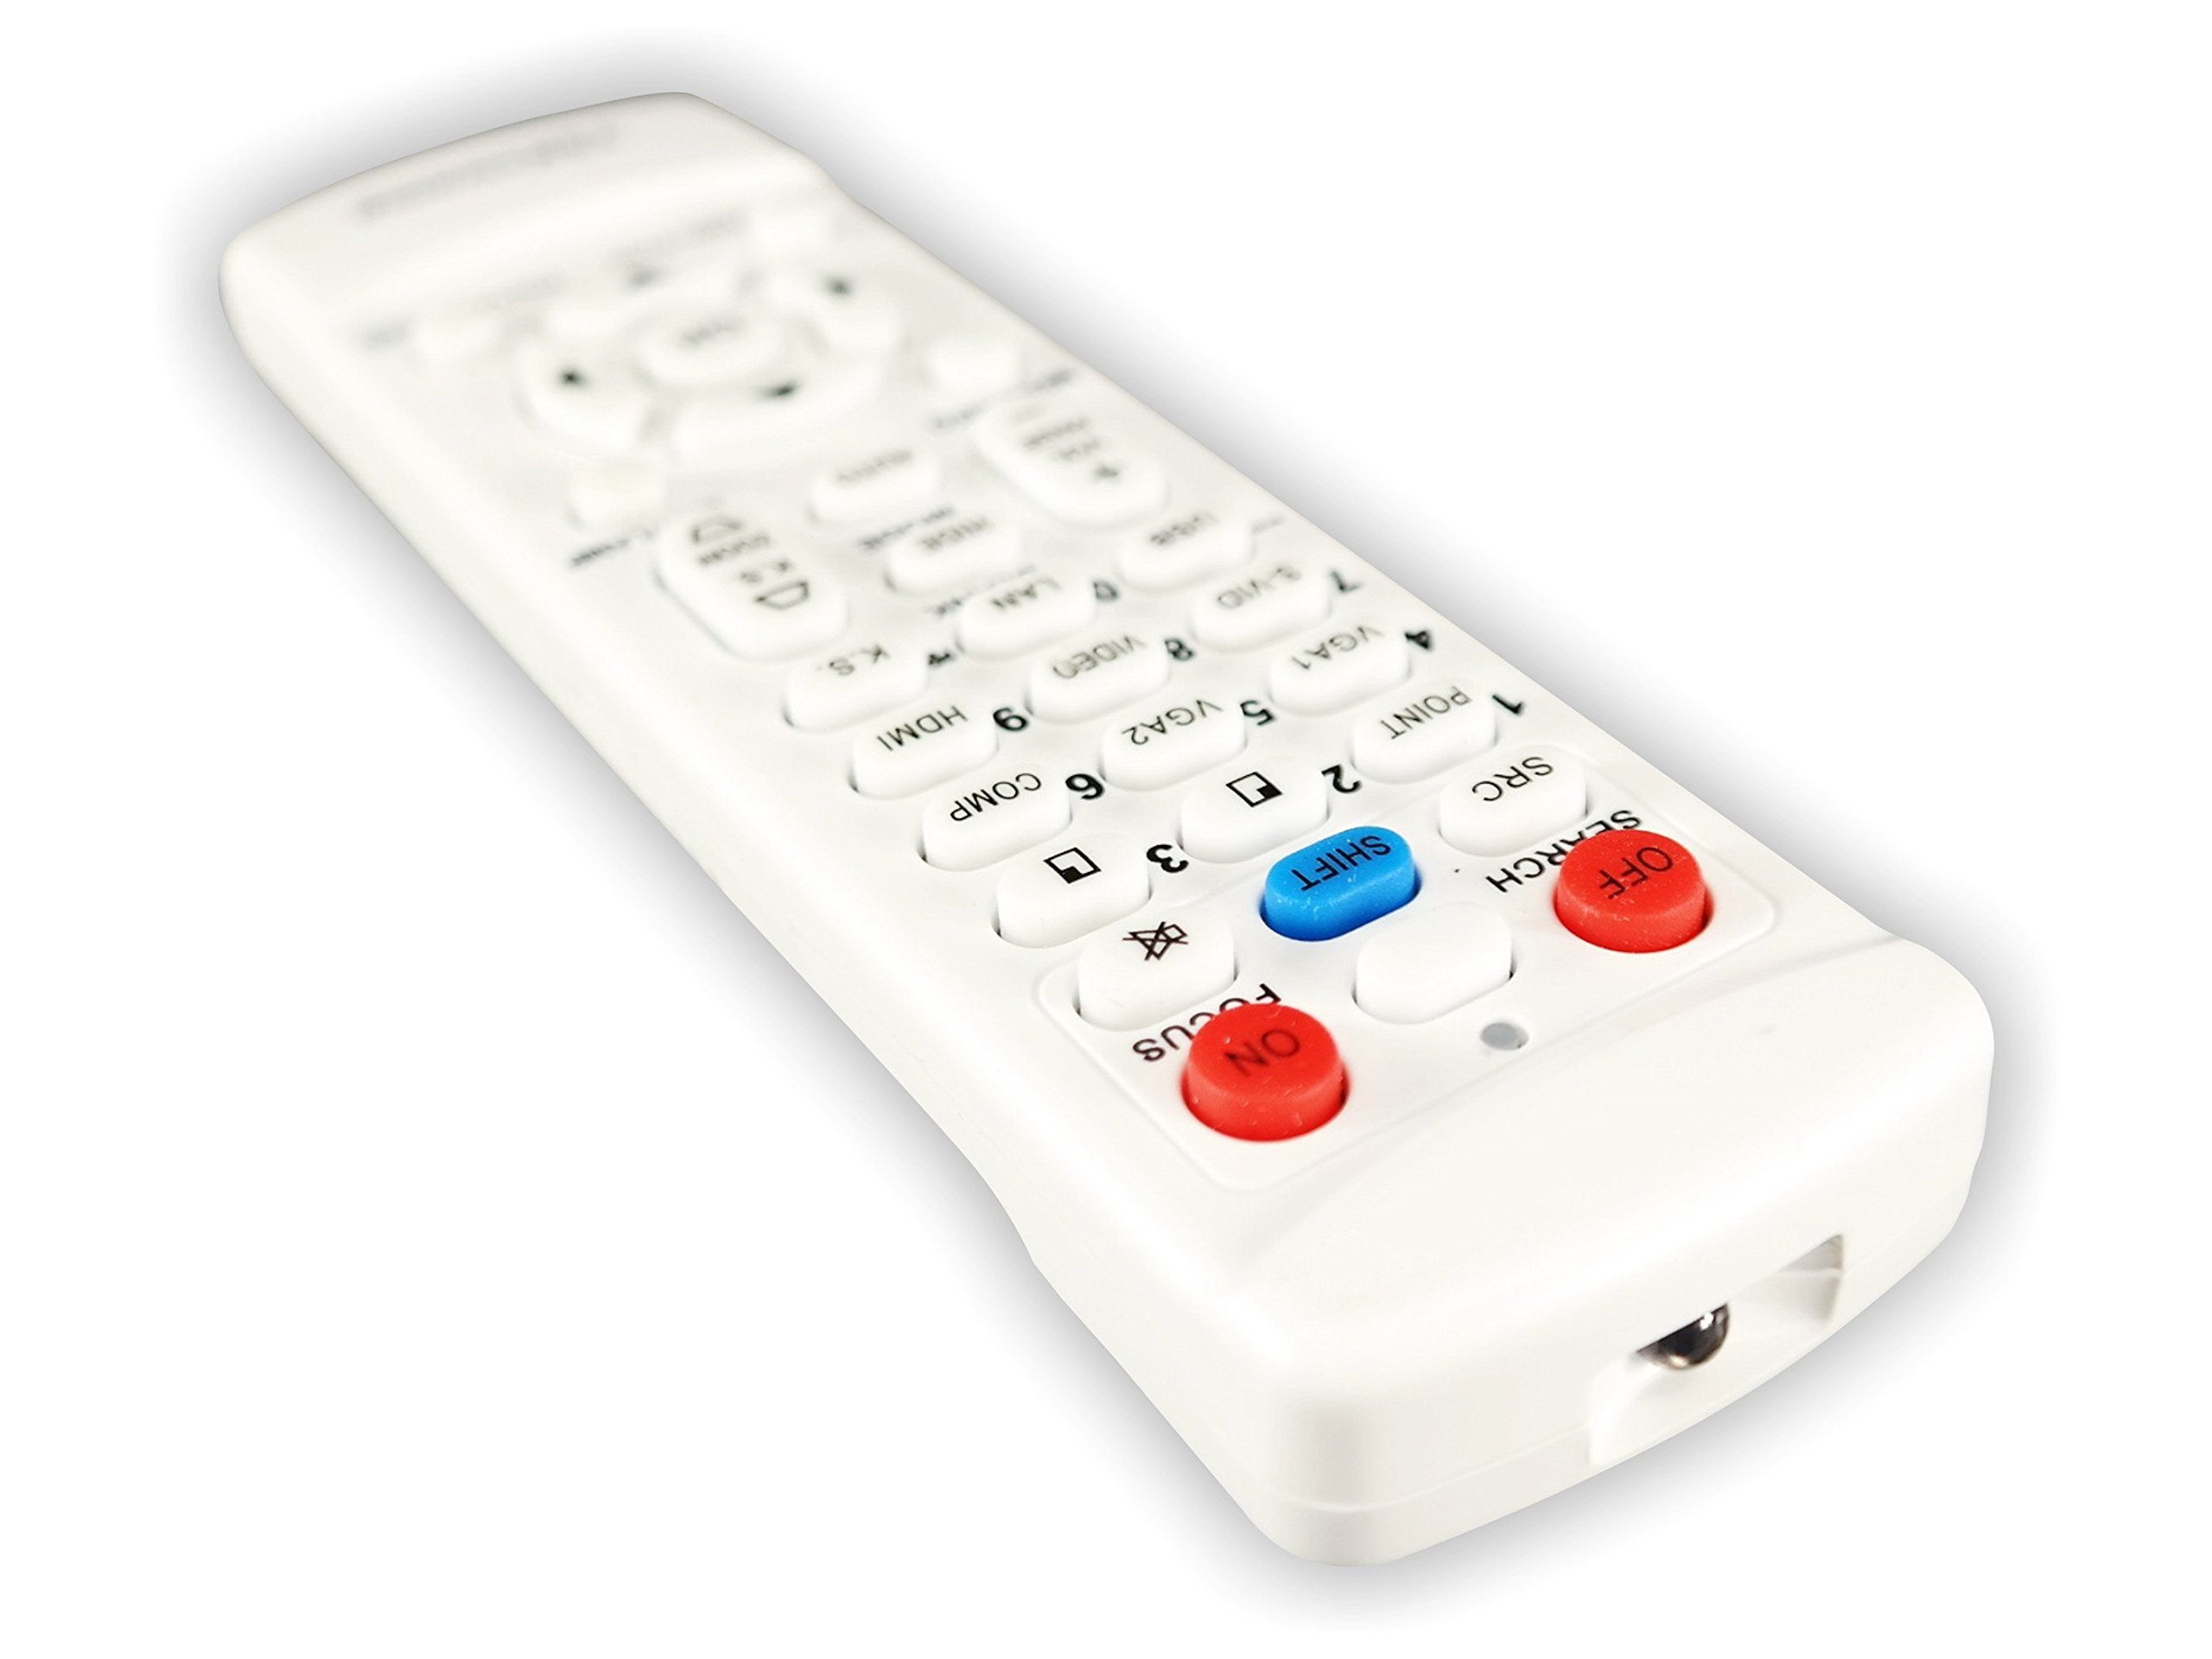 BenQ MH530 TeKswamp Video Projector Remote Control (White) by Tekswamp (Image #3)